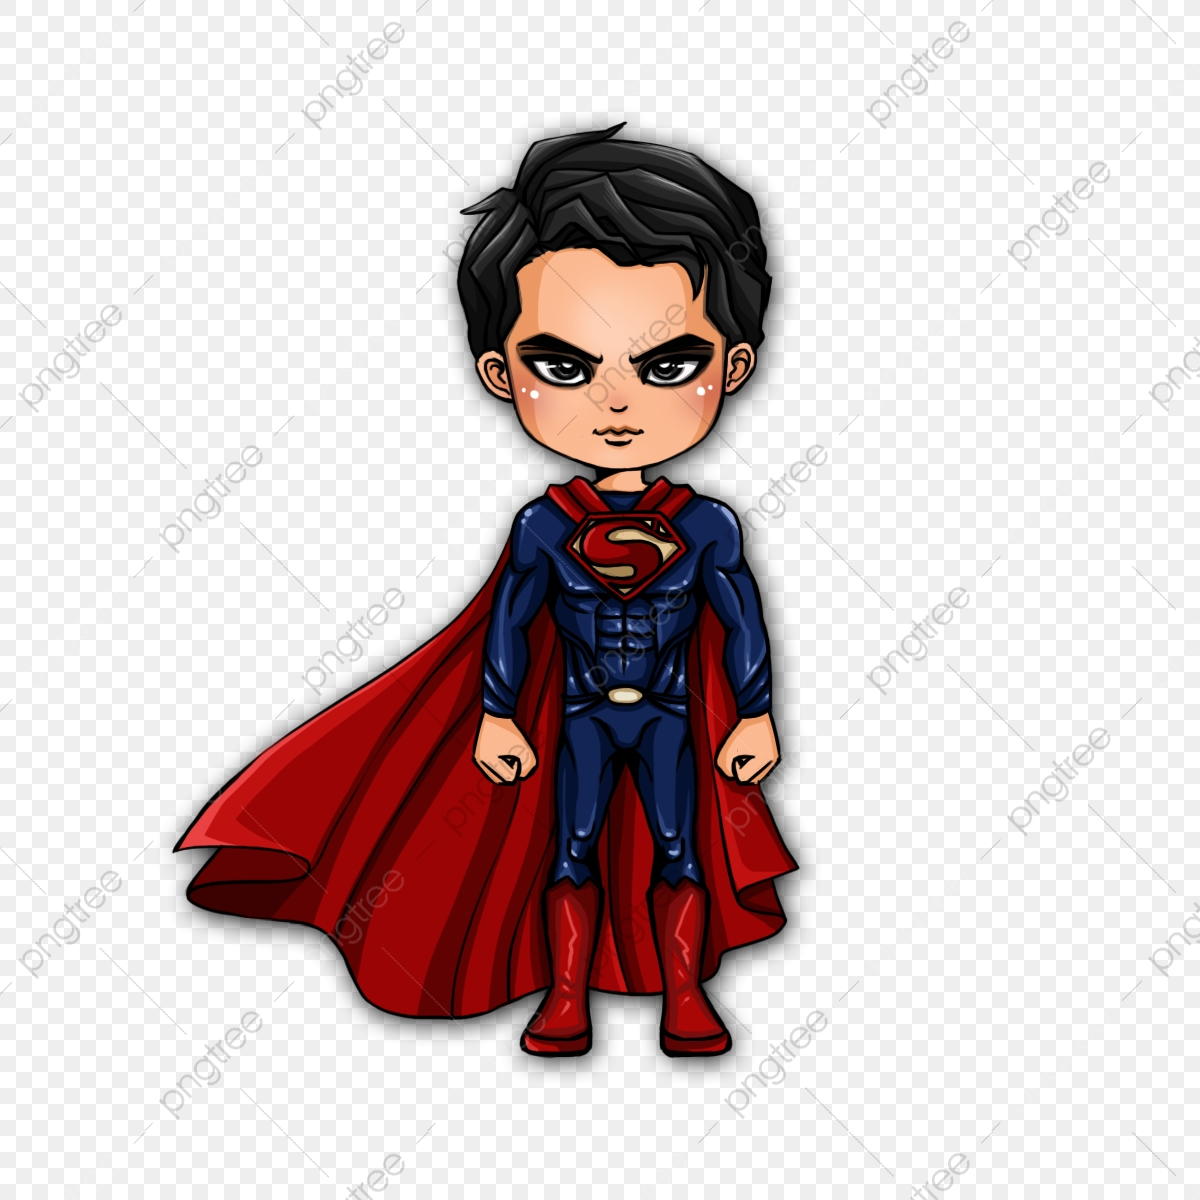 hight resolution of commercial use resource upgrade to premium plan and get license authorization upgradenow superman garfield superman clipart